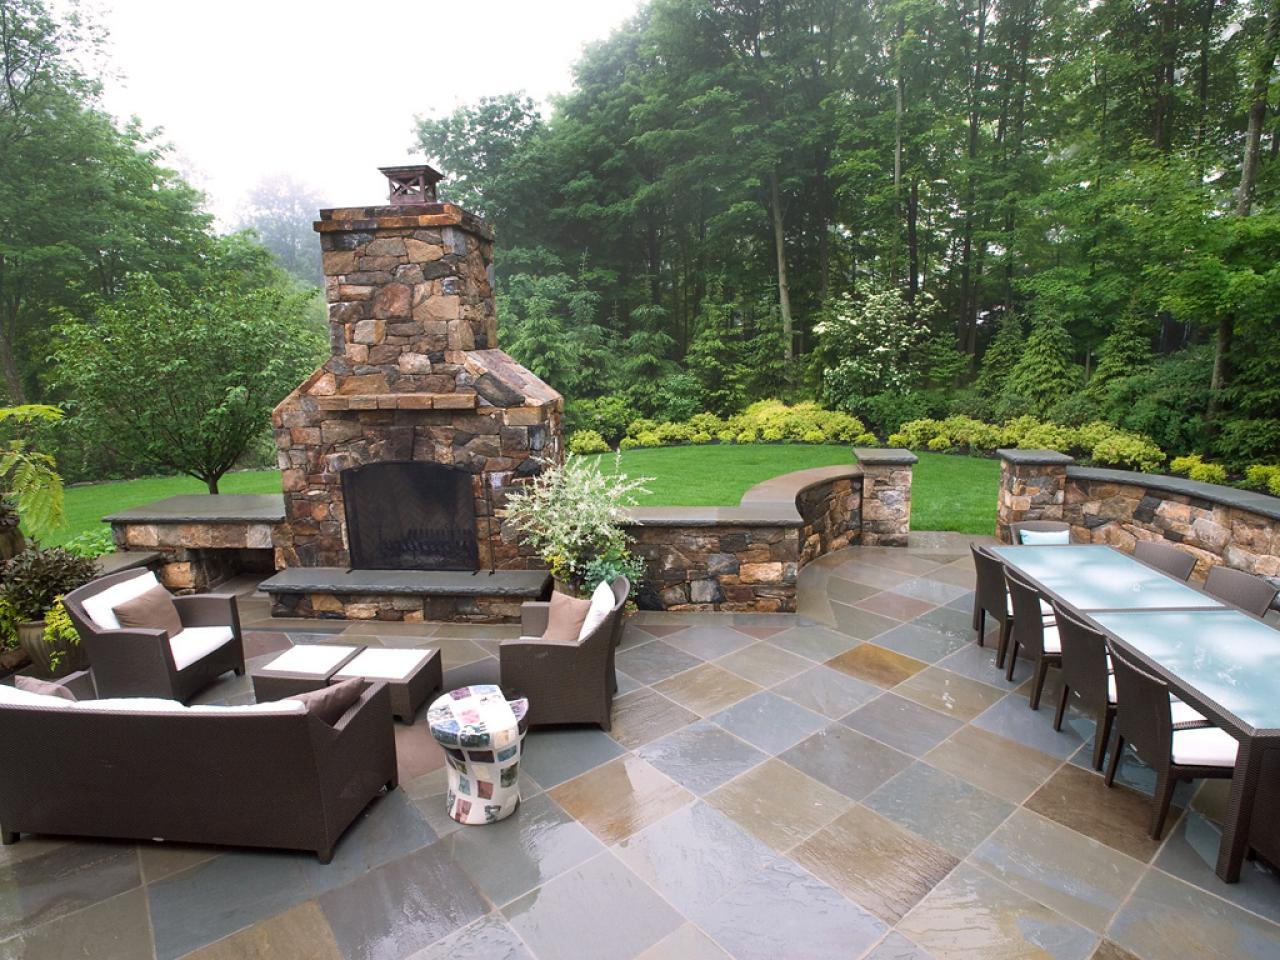 Patio Design & Installation-Fort Worth TX Landscape Designs & Outdoor Living Areas-We offer Landscape Design, Outdoor Patios & Pergolas, Outdoor Living Spaces, Stonescapes, Residential & Commercial Landscaping, Irrigation Installation & Repairs, Drainage Systems, Landscape Lighting, Outdoor Living Spaces, Tree Service, Lawn Service, and more.